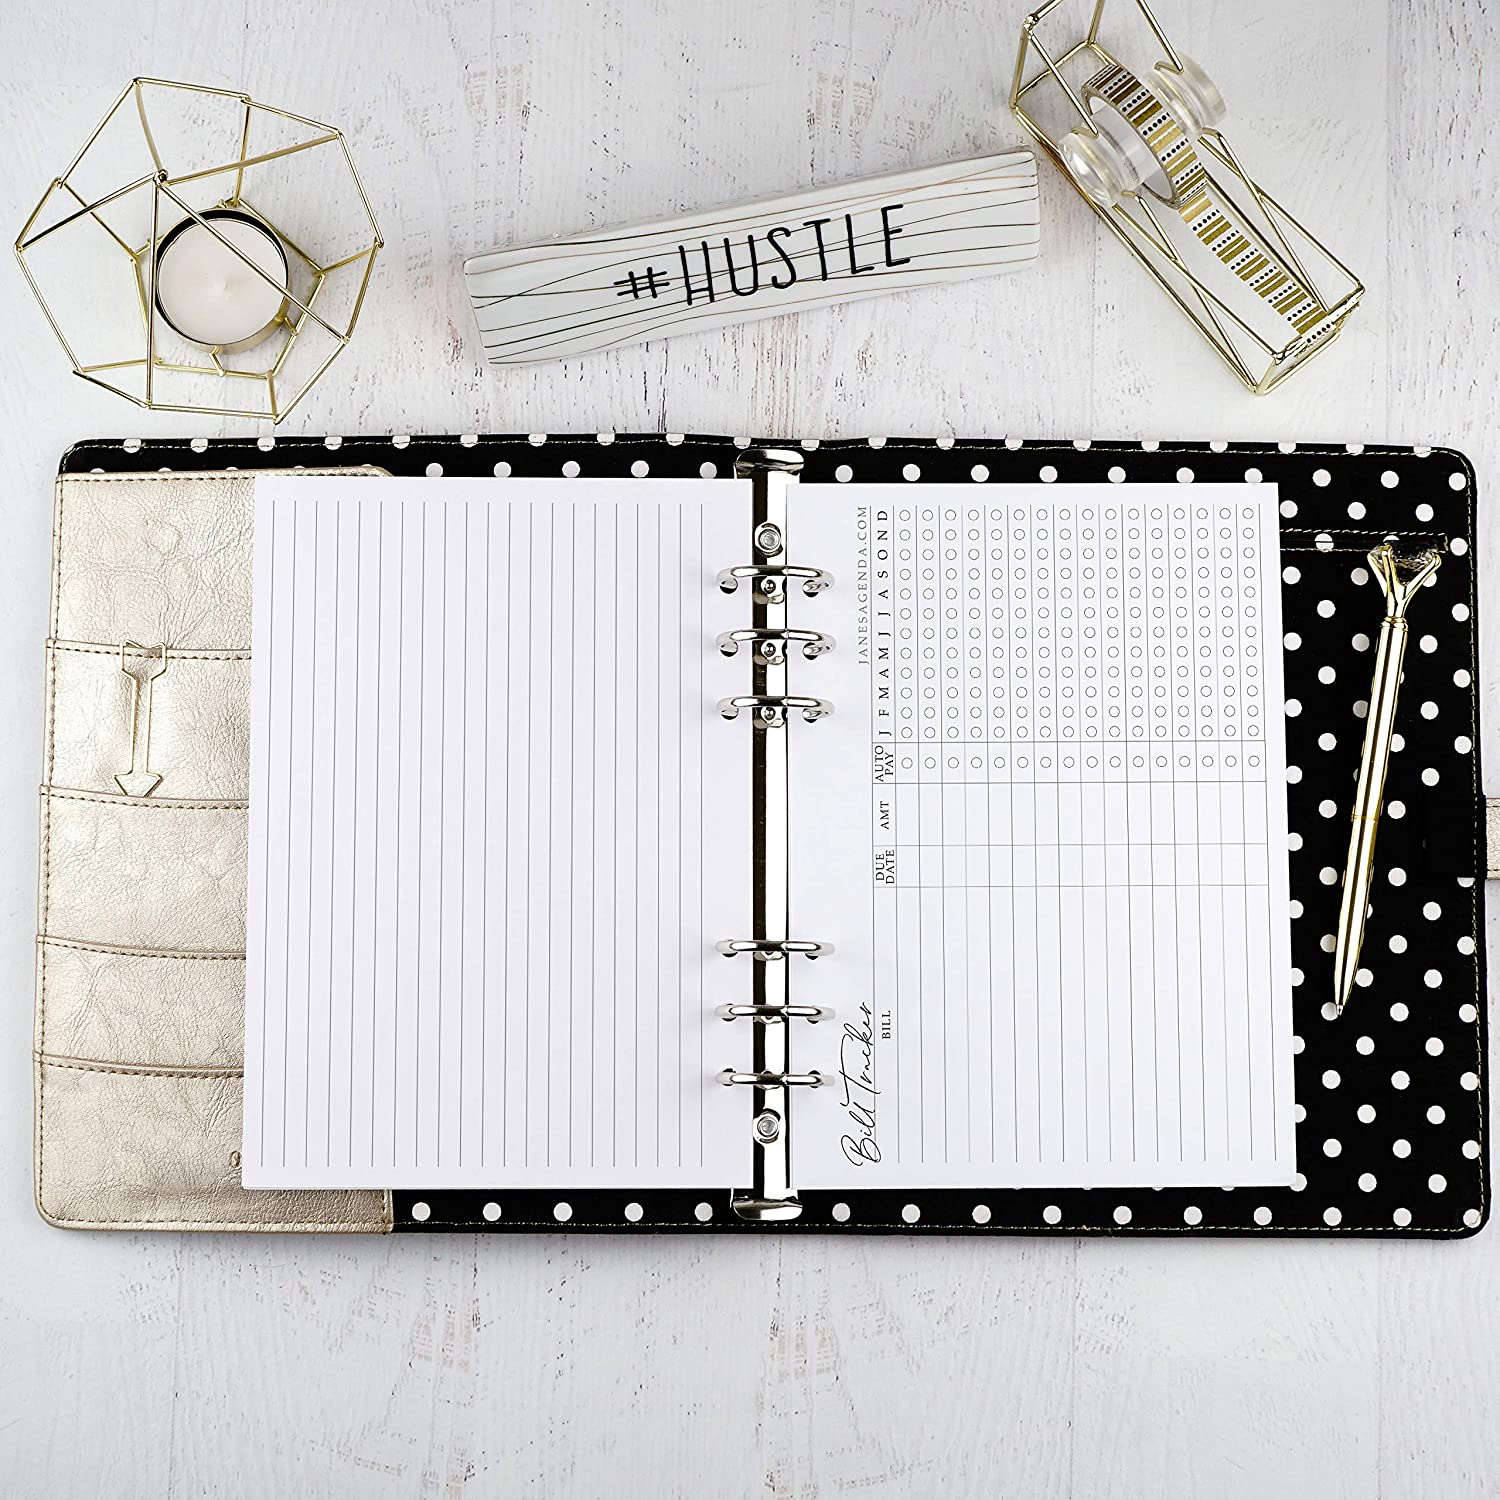 4.60x7.00 inches Refill for Mini Happy Planner Bills Tracker Planner Inserts